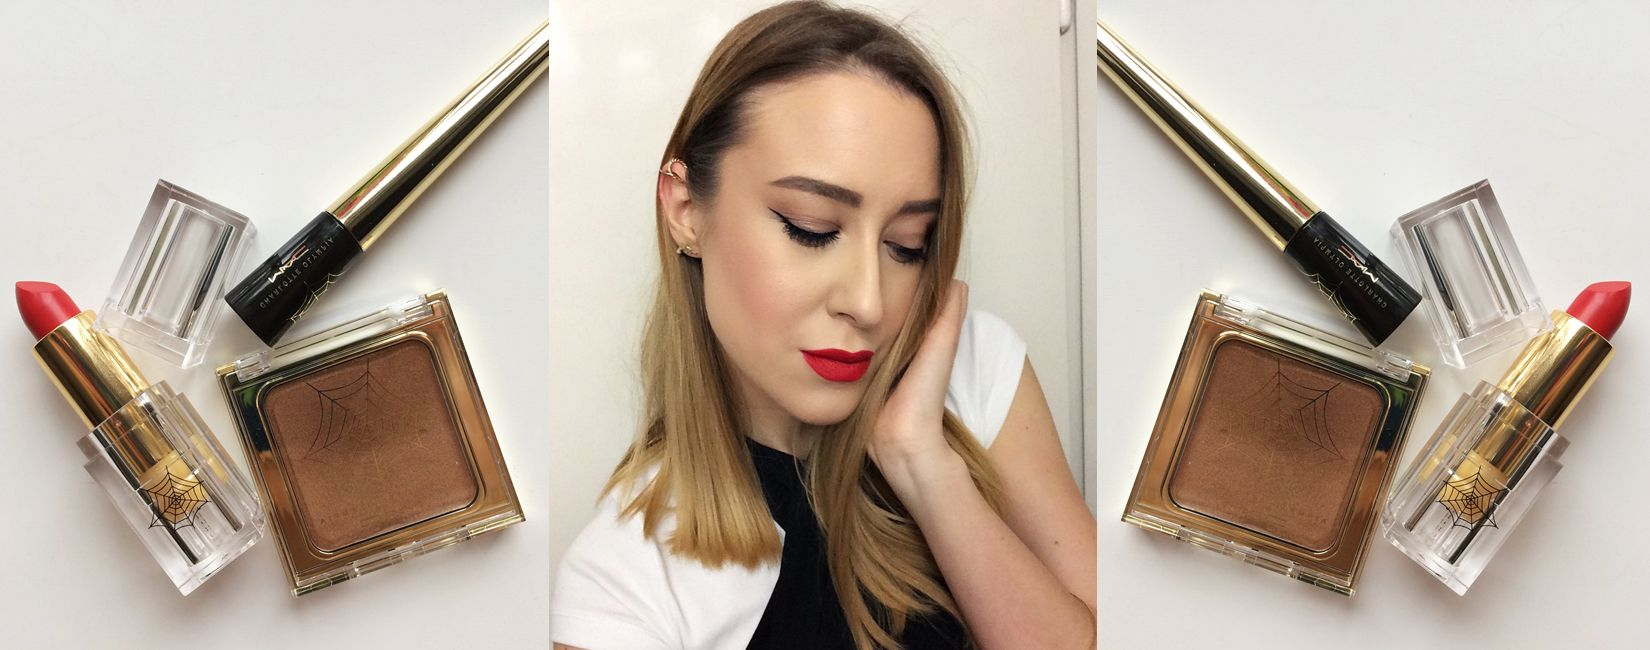 Editors Pick: Prvi smo isprobali MAC x Charlotte Olympia make up kolekciju